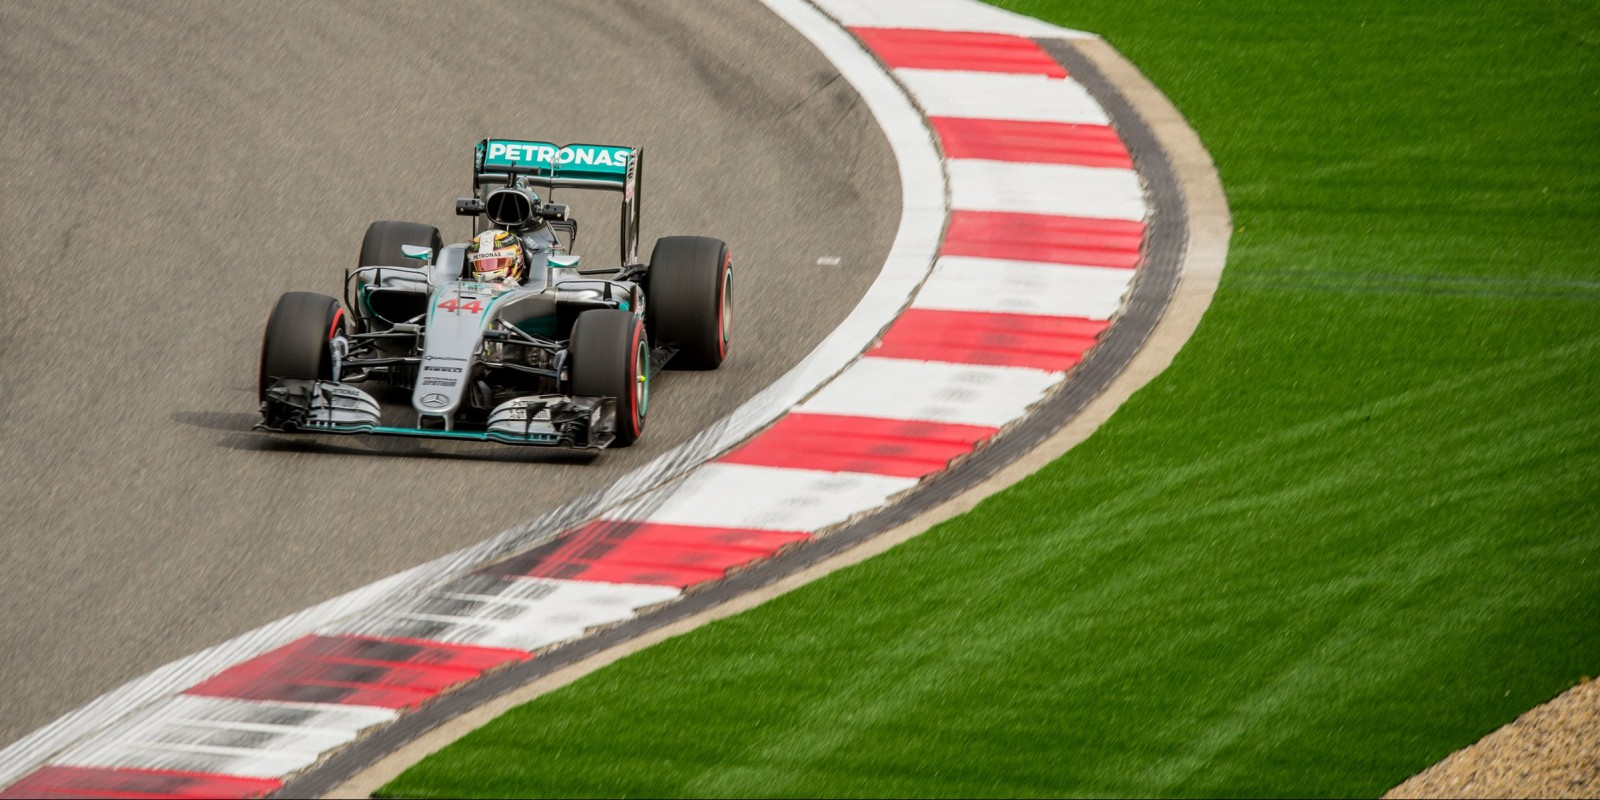 Sunday images from round three of the FIA Formula One World Championship